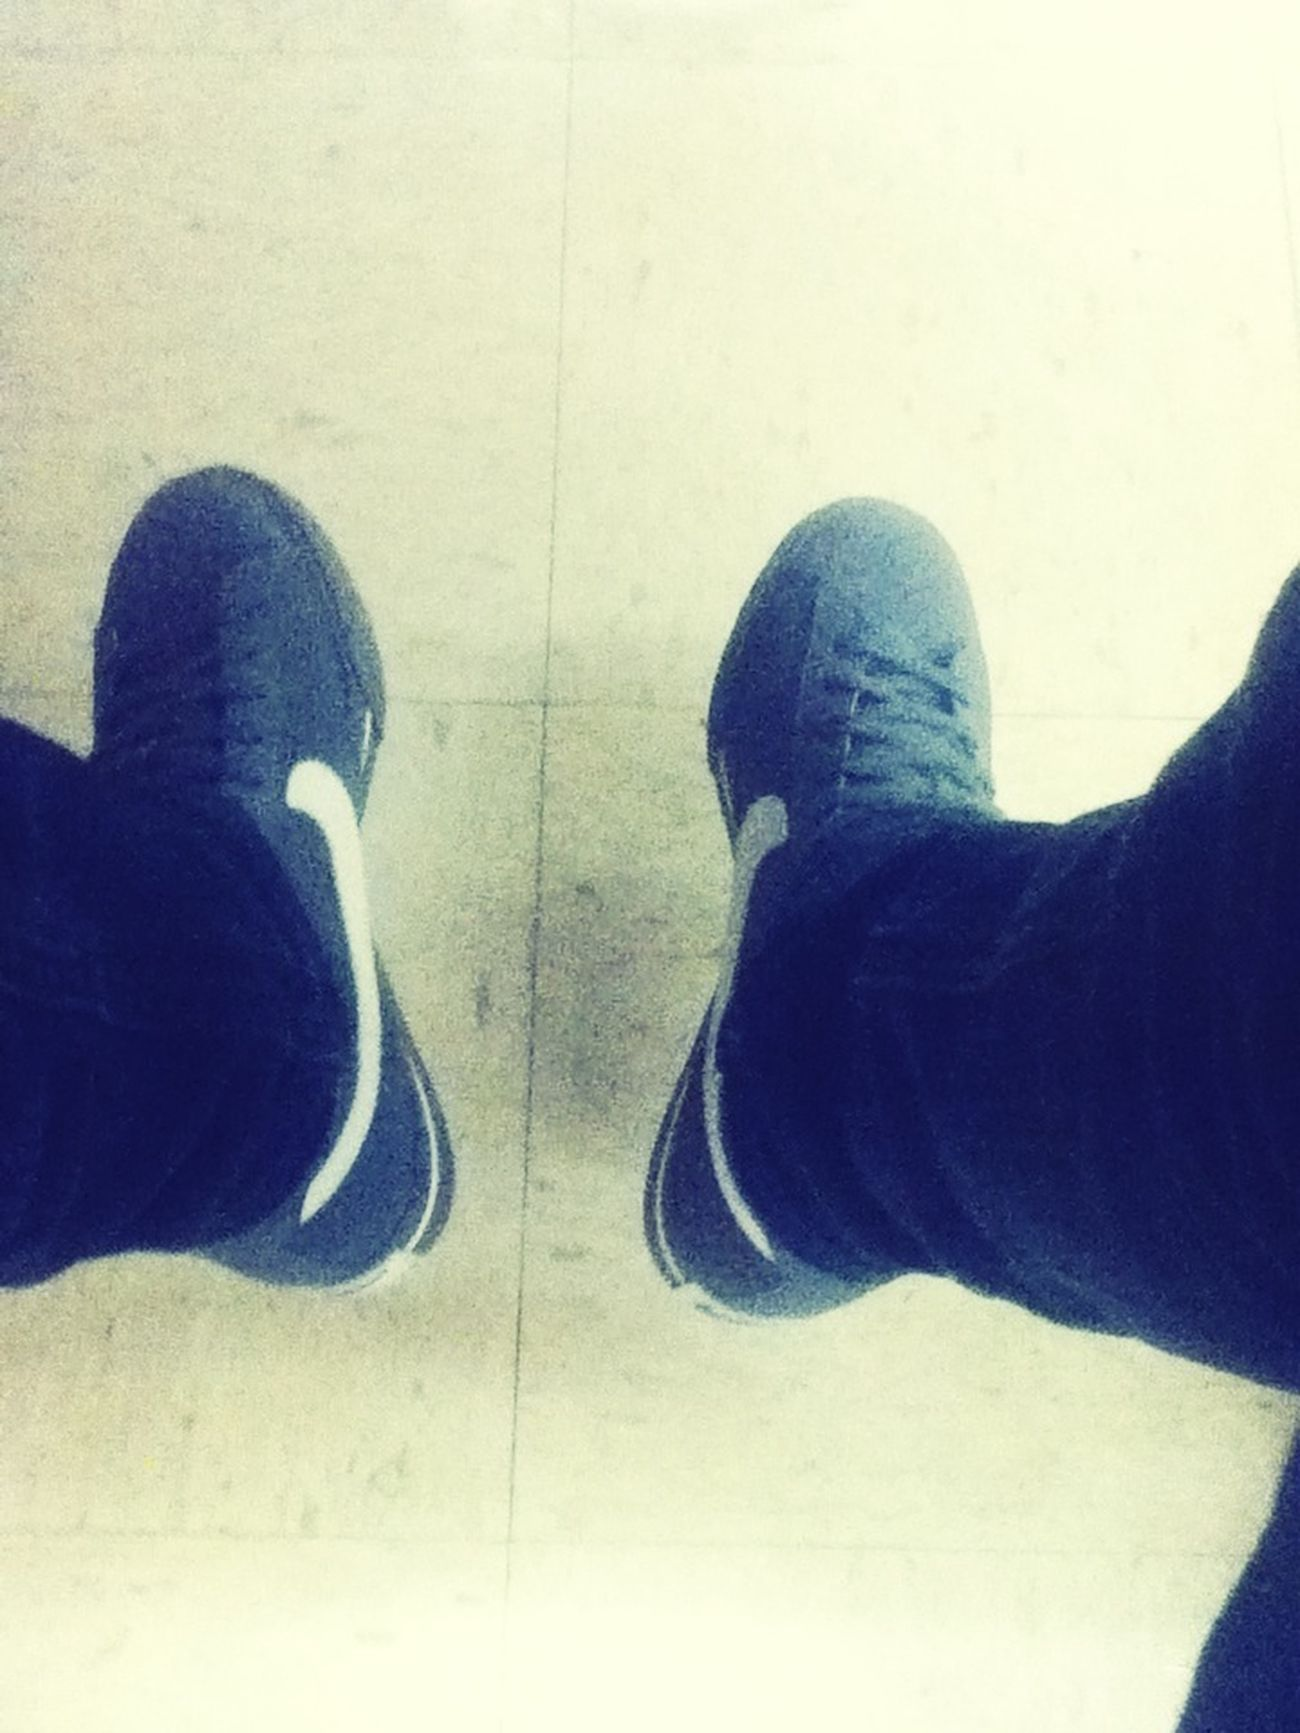 Nikes On My Feet ;)